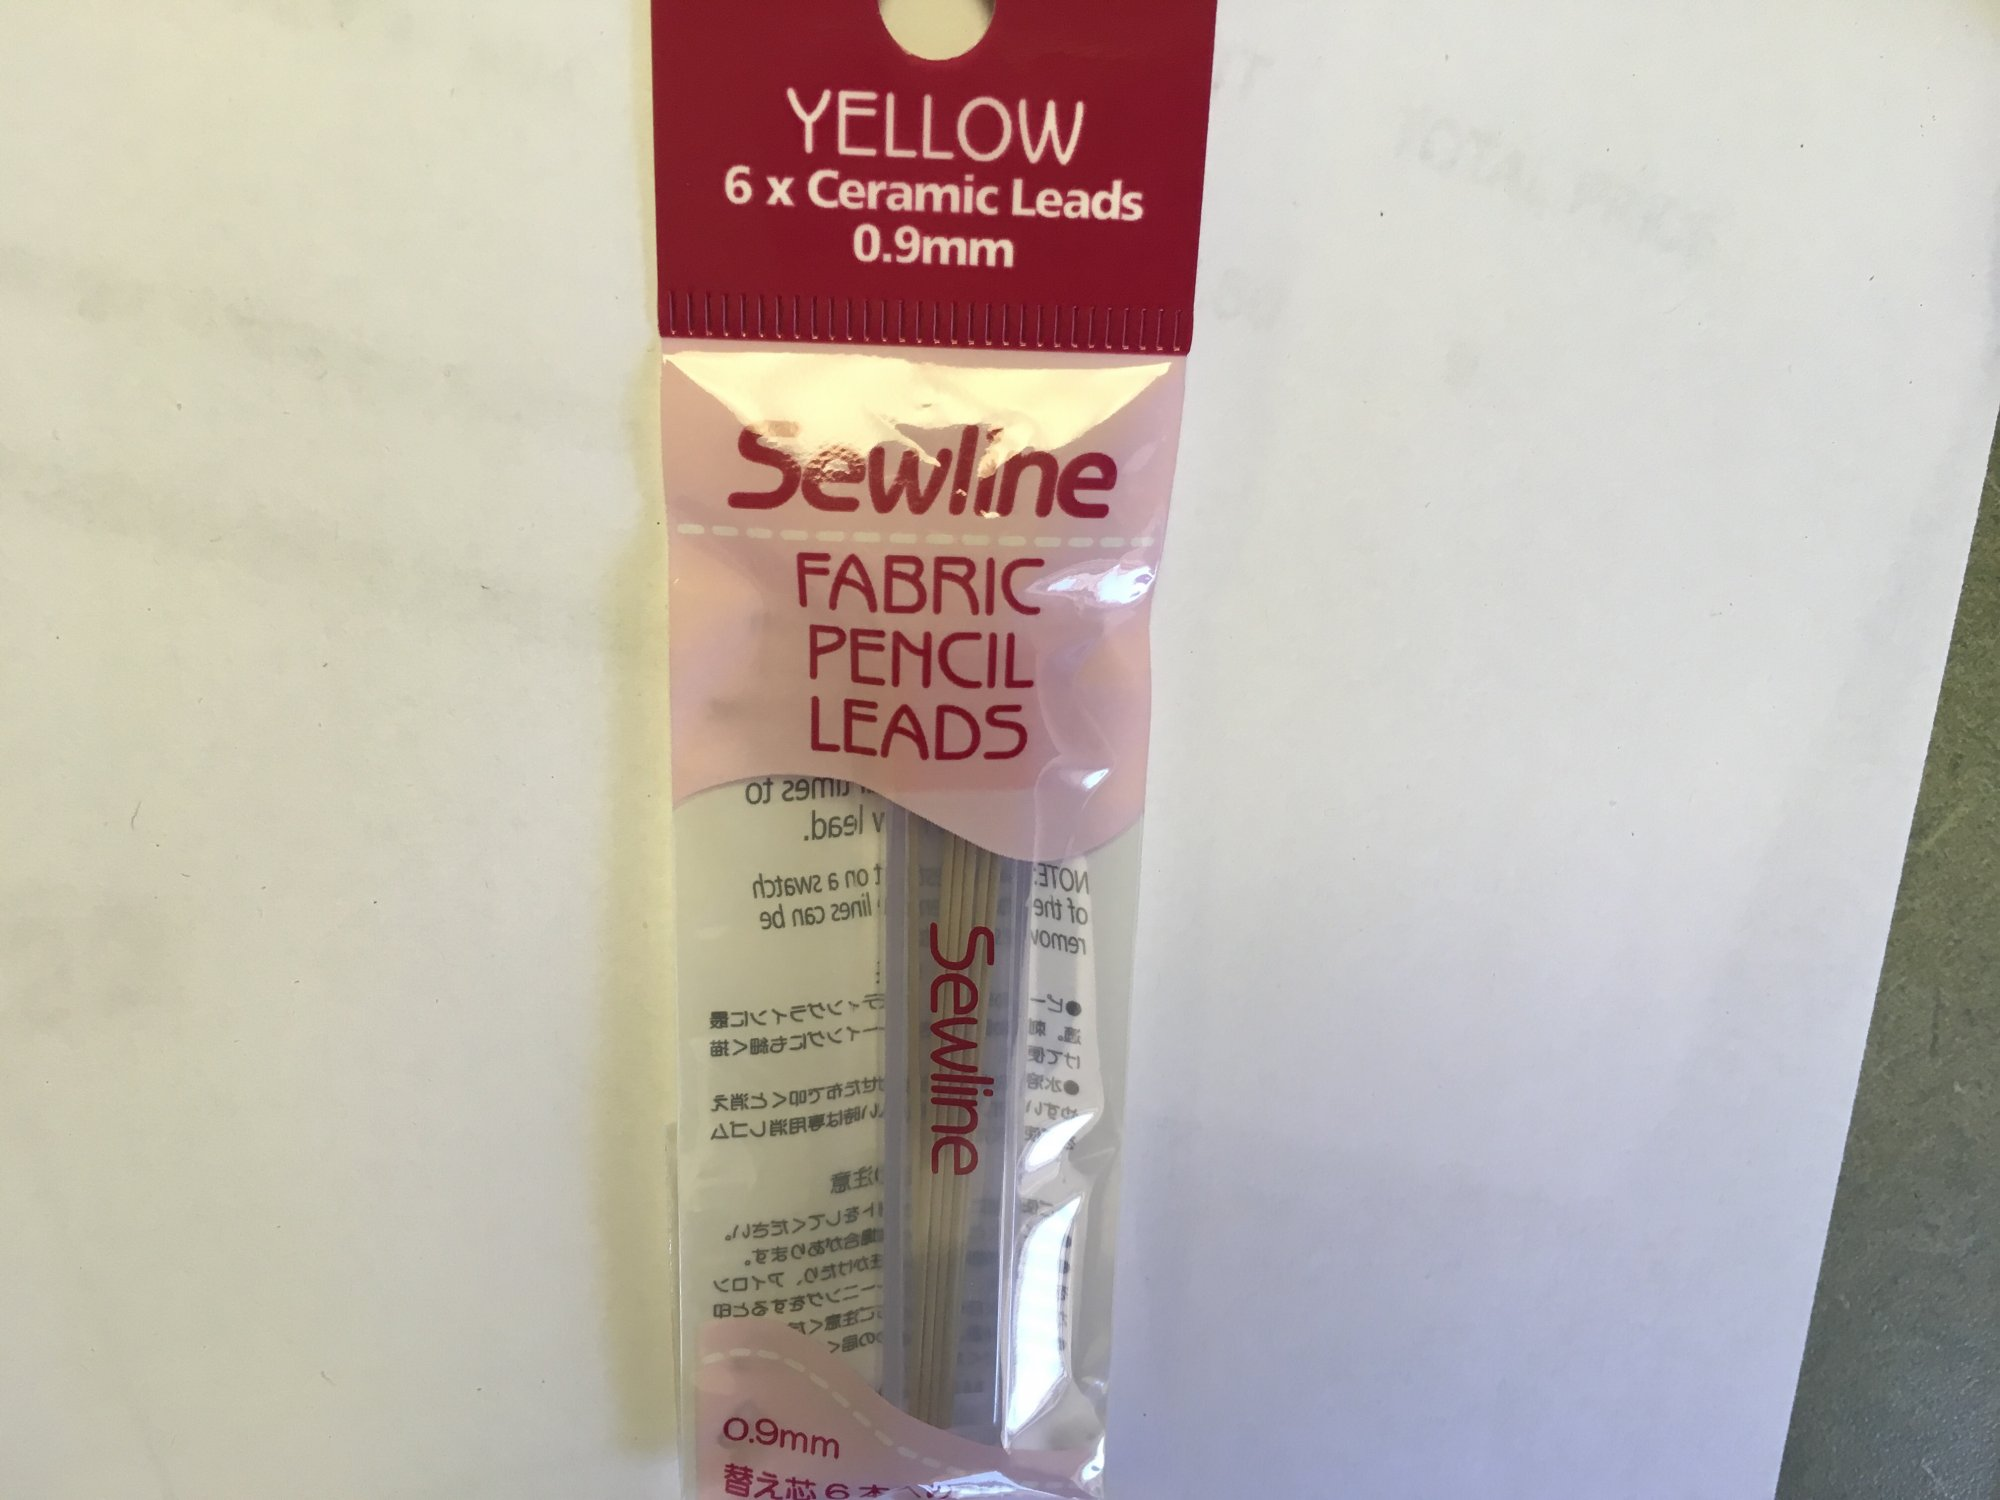 Fabric Pencil Refills .9mm Lead Yellow FAB50008 by Sewline